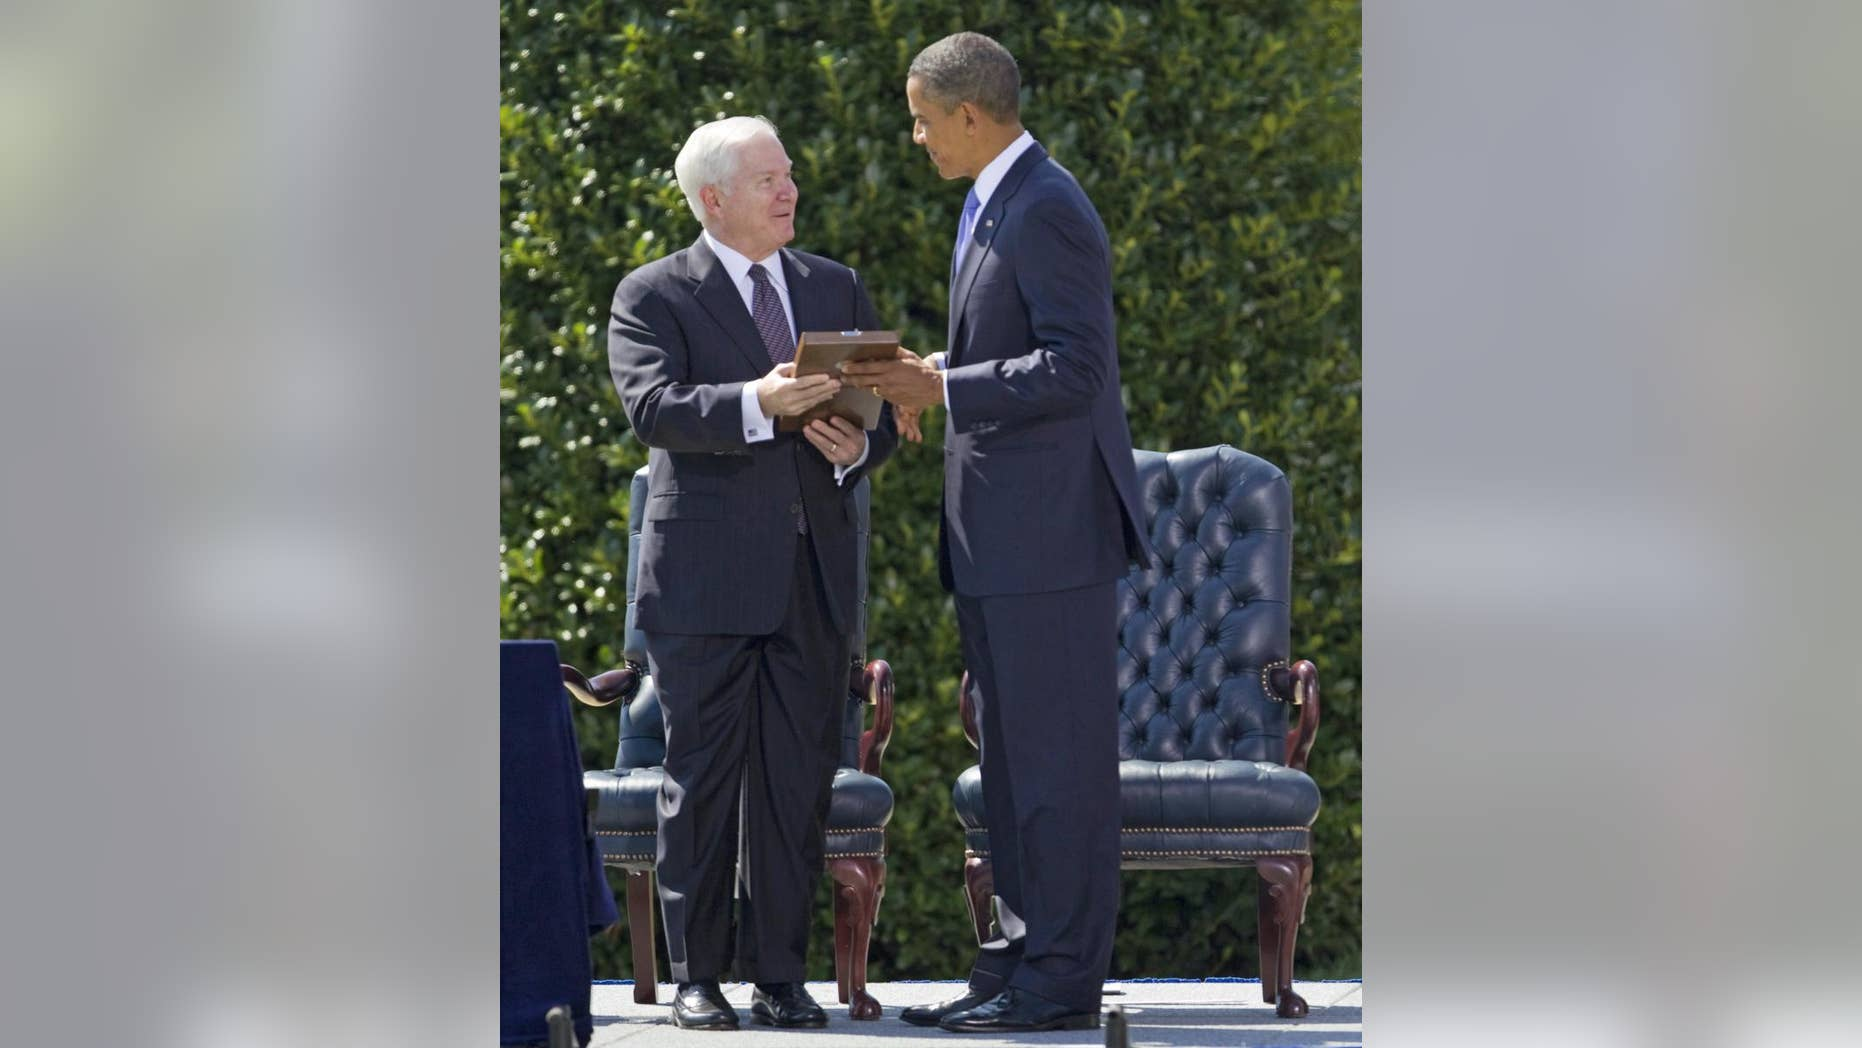 President Barack Obama presents outgoing Defense Secretary Robert Gates with the Presidential Medal of Freedom during a farewell ceremony for Gates, Thursday, June 30, 2011, at the Pentagon. (AP Photo/Evan Vucci)